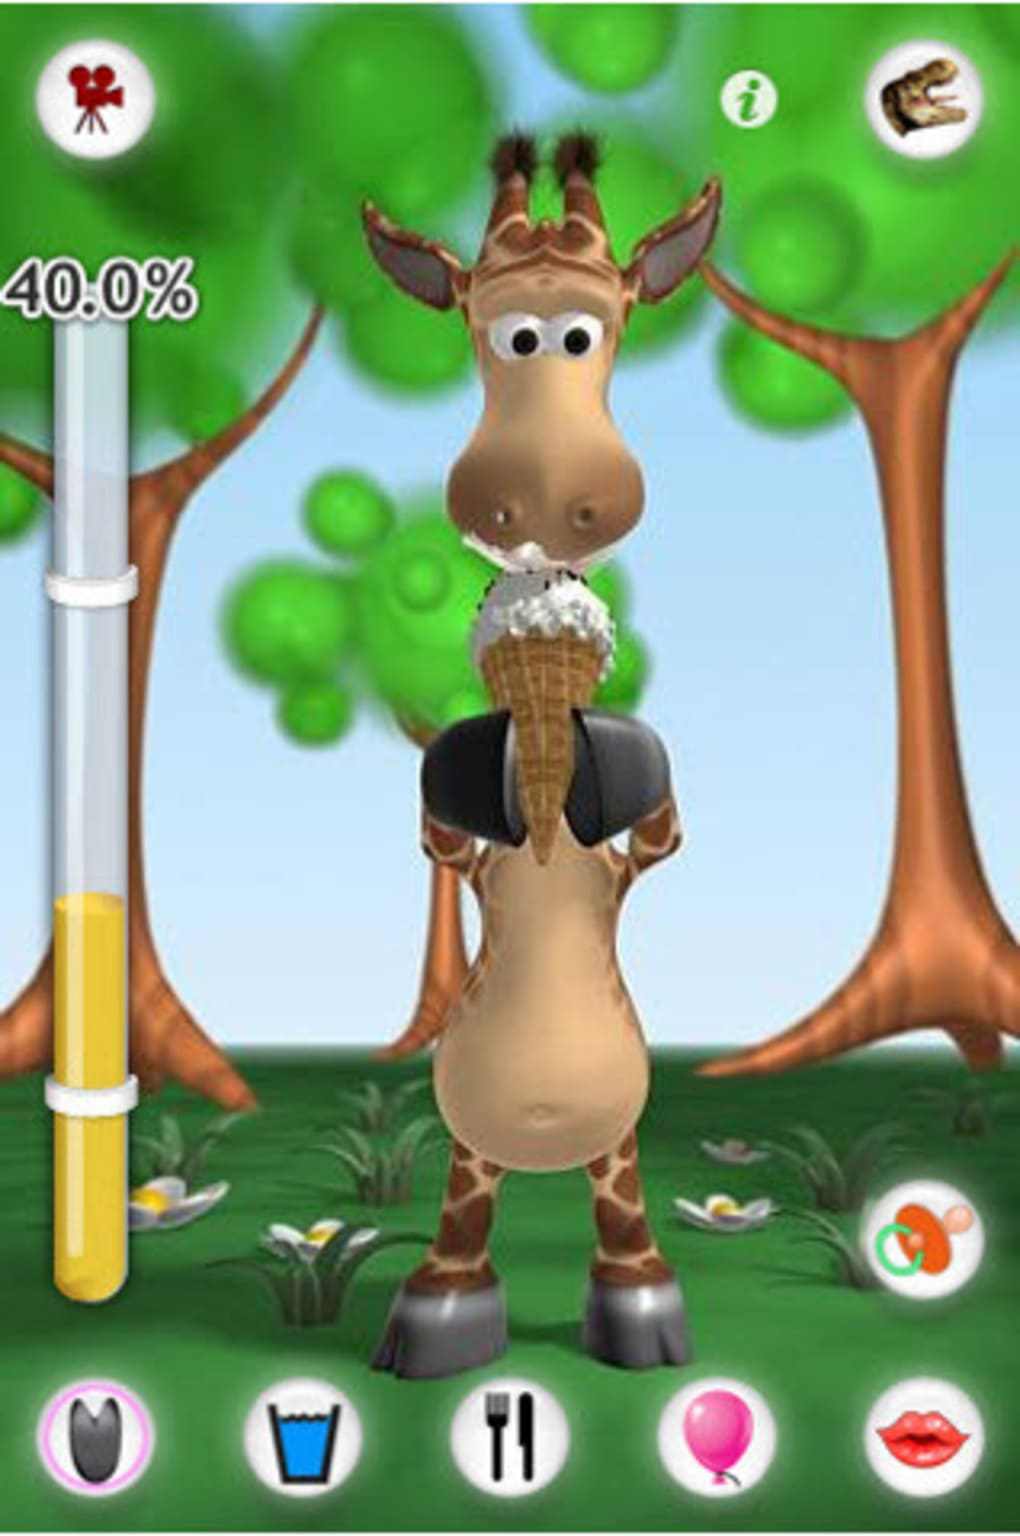 Download talking gina the giraffe 1. 2. 1 (free) for android.